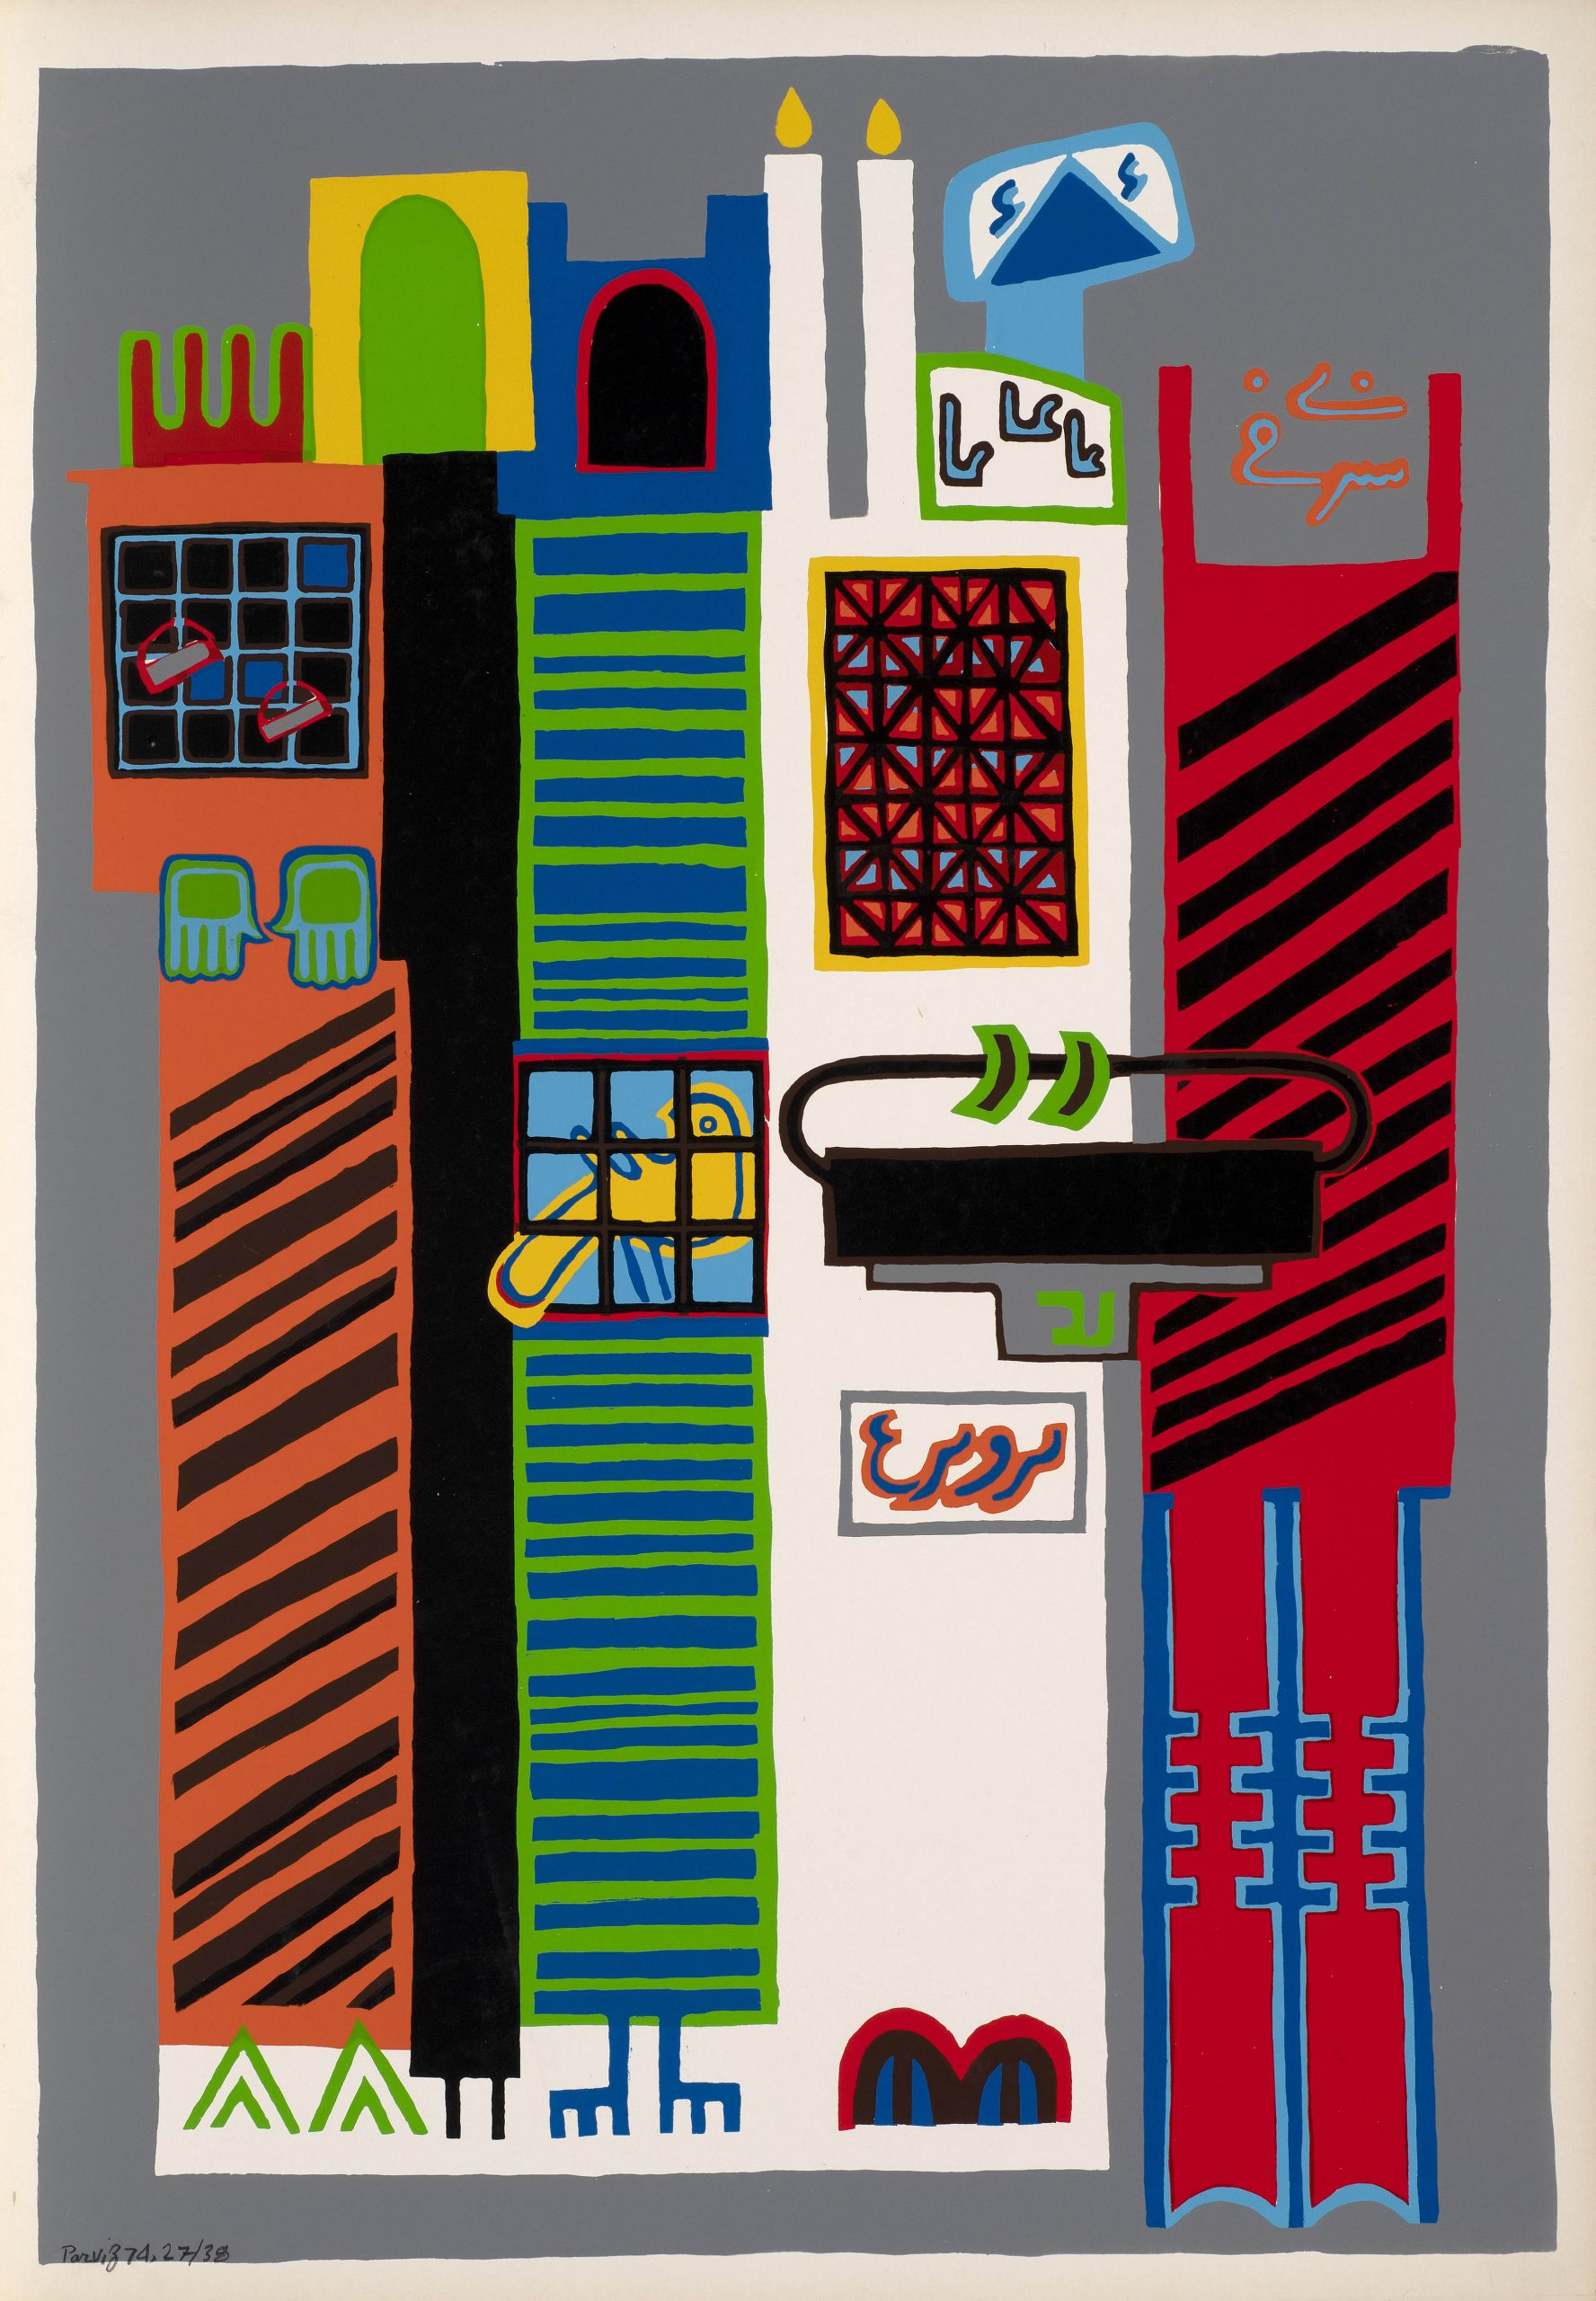 DISCIPLES OF SHEIKH SAN'AN, 1974   Screenprint on paper   Signed, dated and editioned 'Parviz 74' lower left   From an edition of 38   100 x 70 cm (39 3/8 x 27 1/2 in)